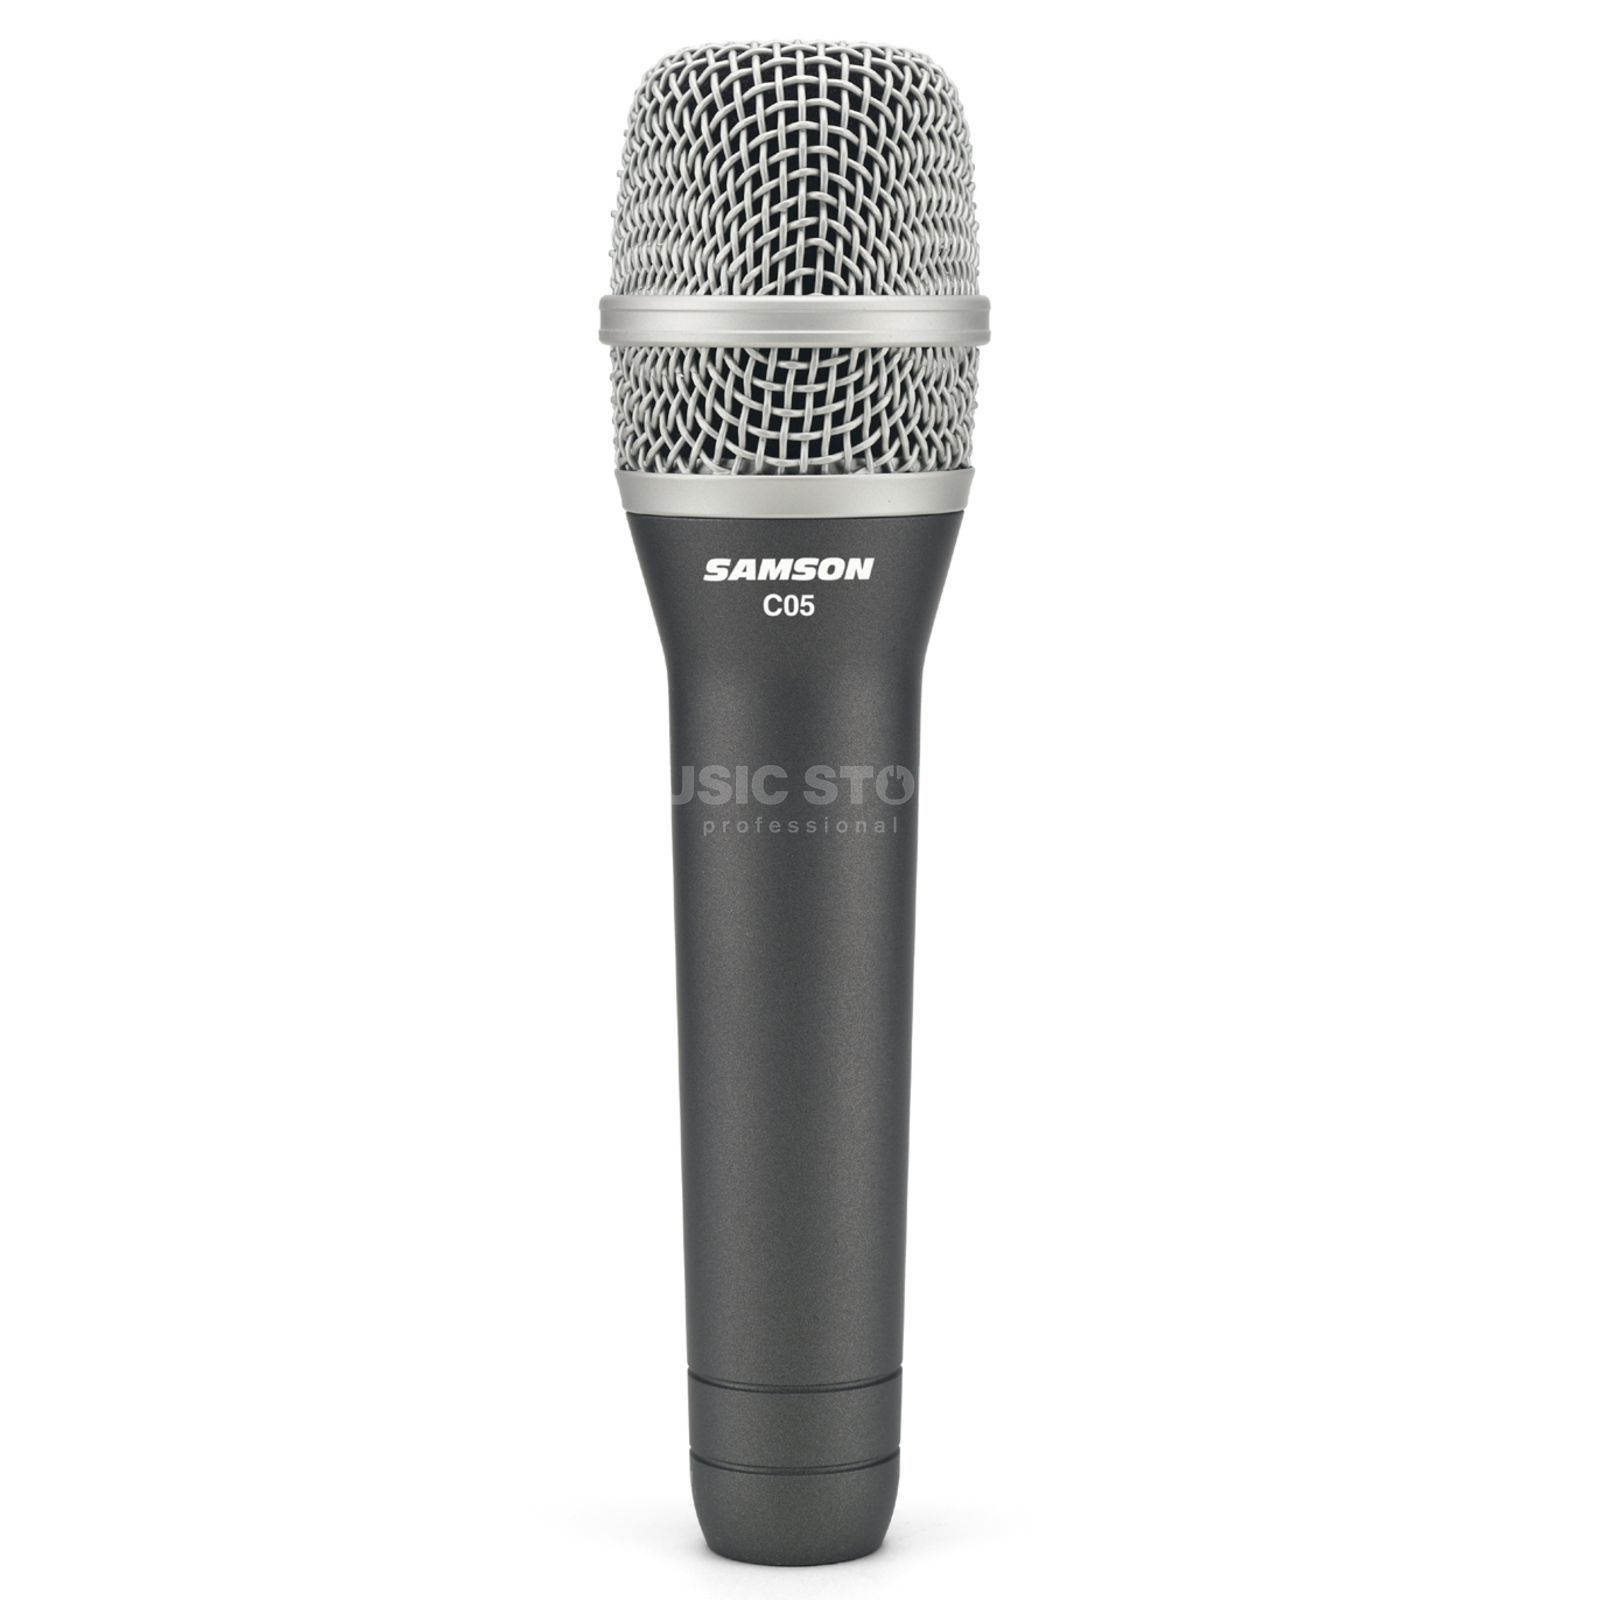 Samson C05 CL Condenser Microphone Product Image